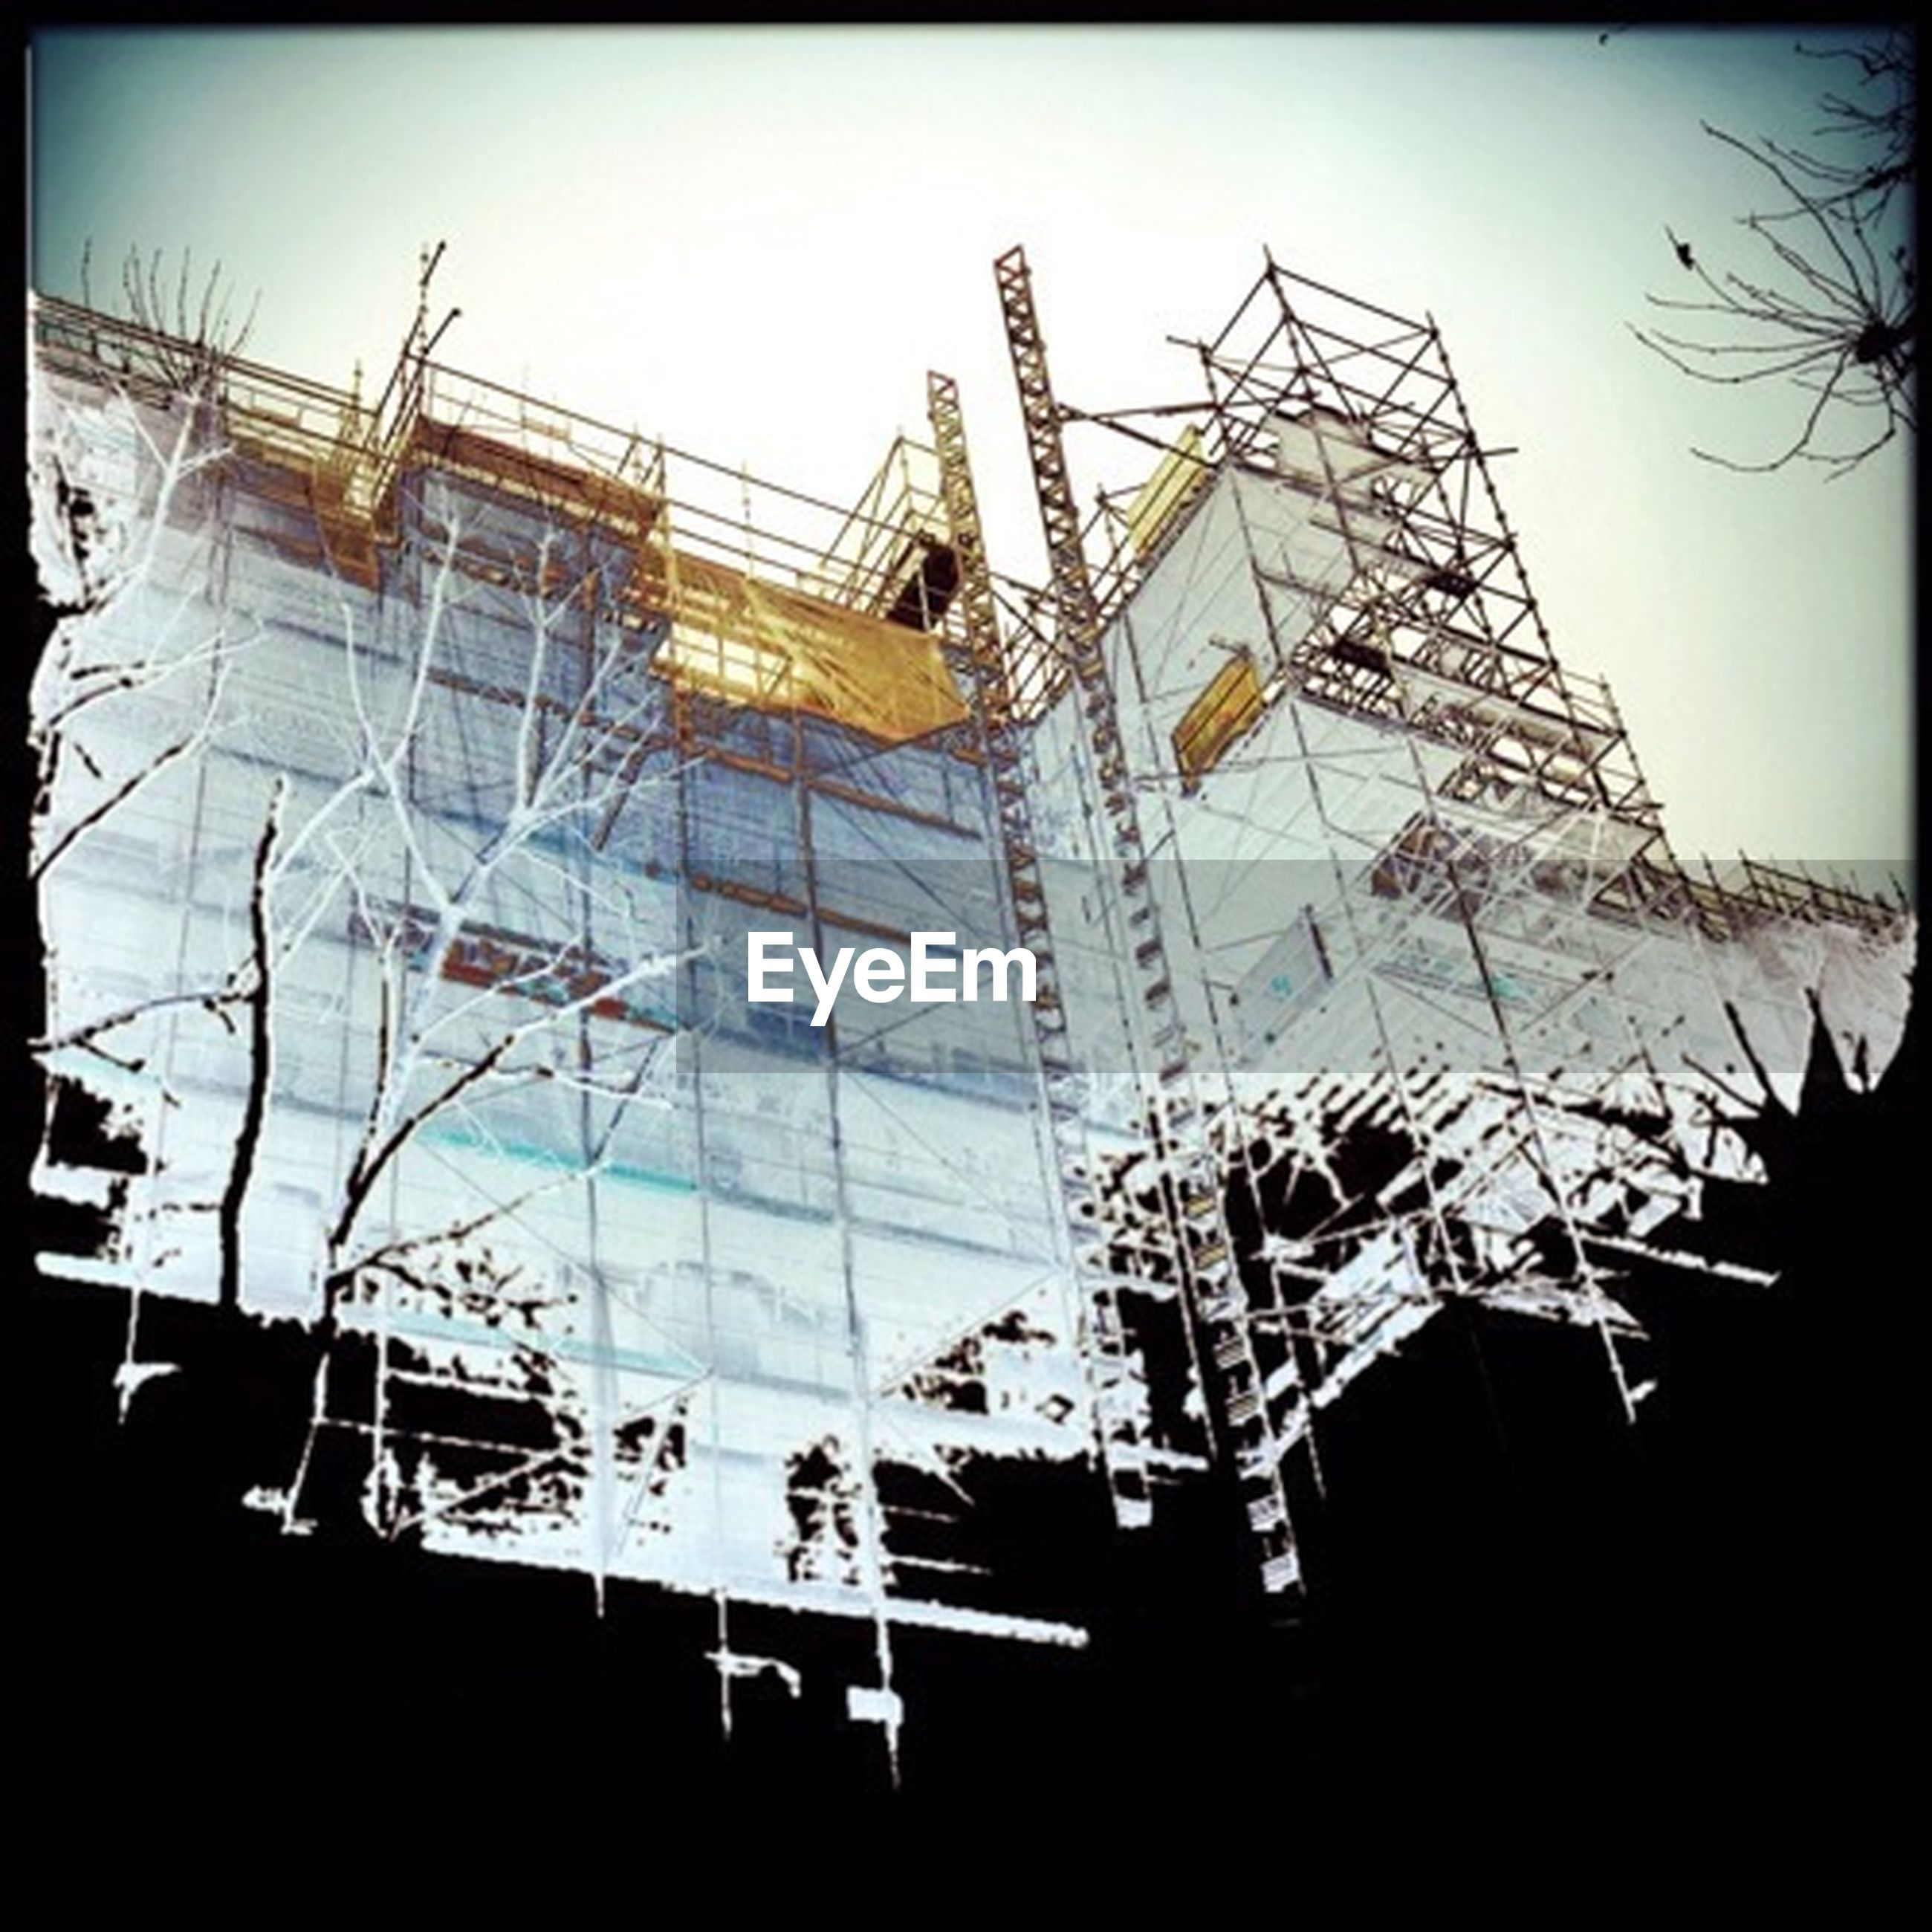 architecture, built structure, building exterior, low angle view, clear sky, auto post production filter, building, transfer print, construction site, day, sky, glass - material, construction, no people, outdoors, development, city, scaffolding, window, crane - construction machinery